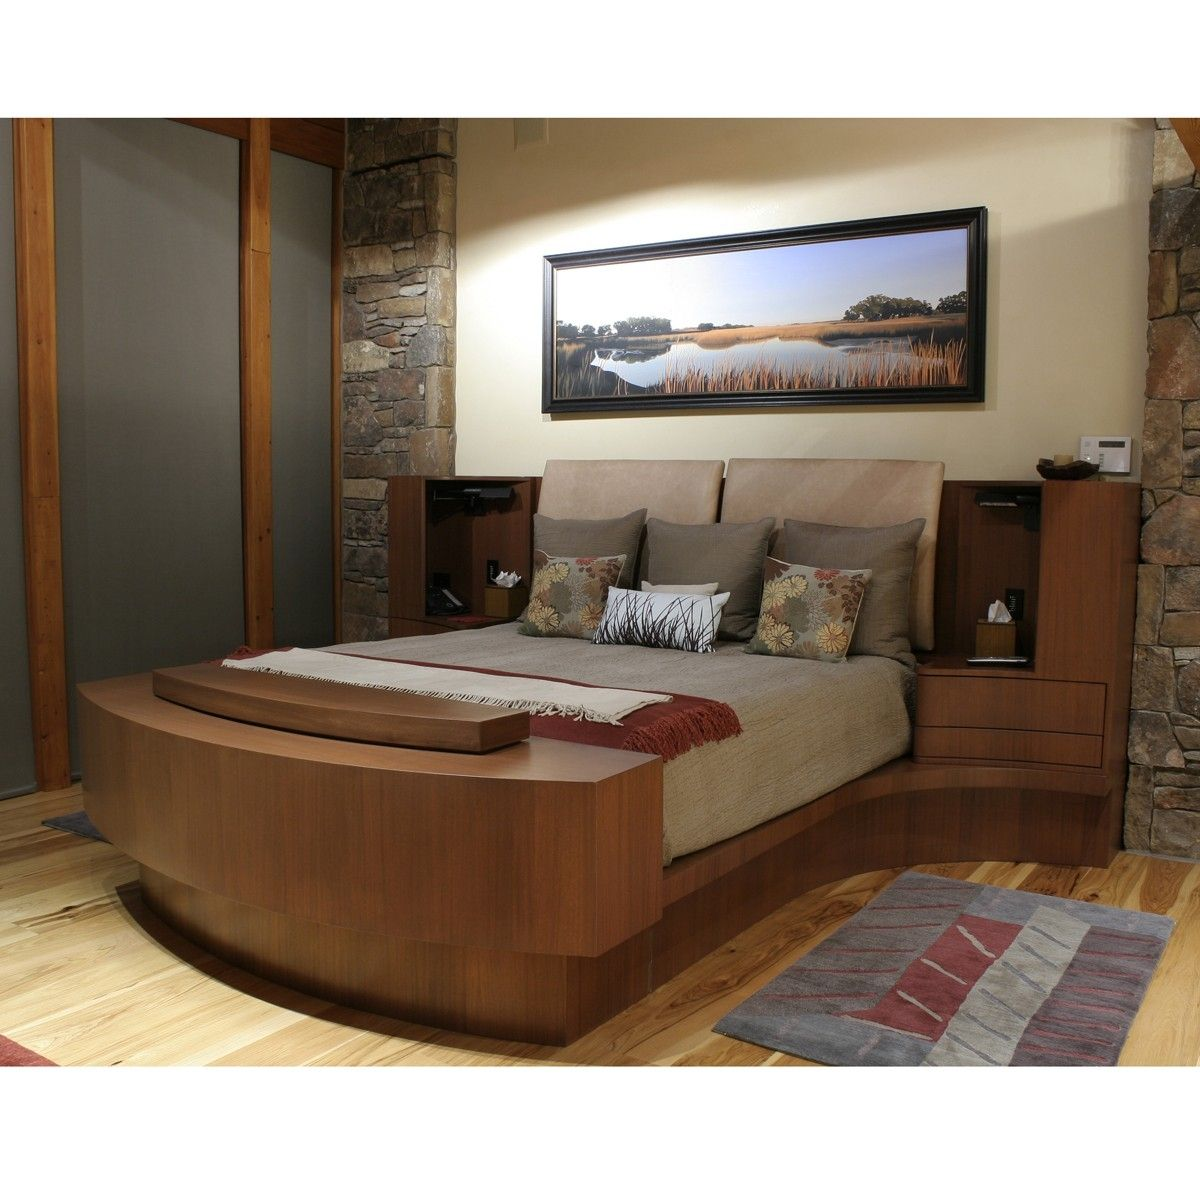 Custom made master bed by pagomo designs for Custom bedroom designs